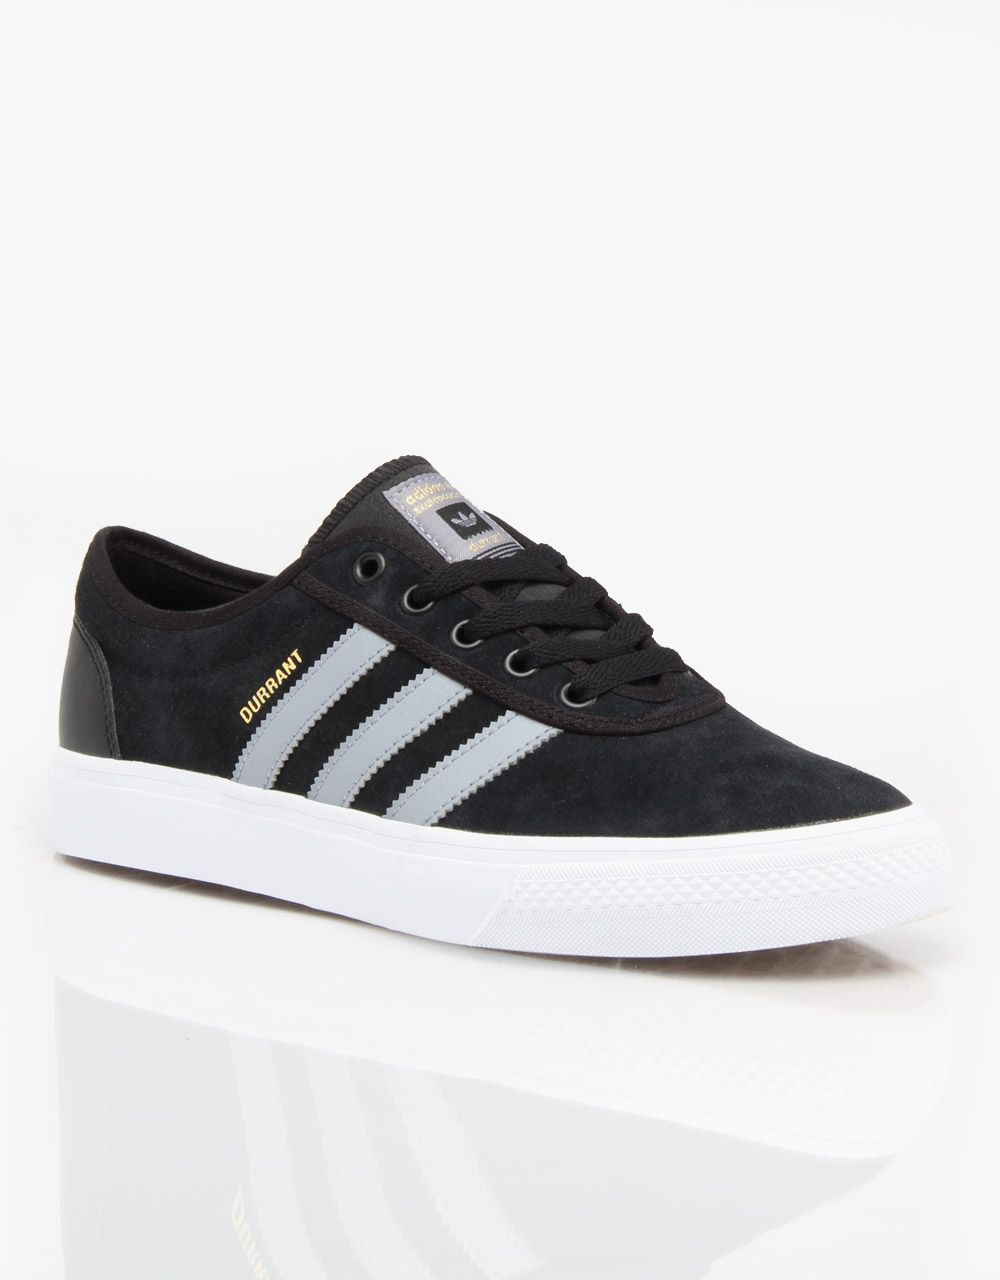 Adidas Adi-Ease Pro (Dennis Durrant) Skate Shoes - Black/Grey/